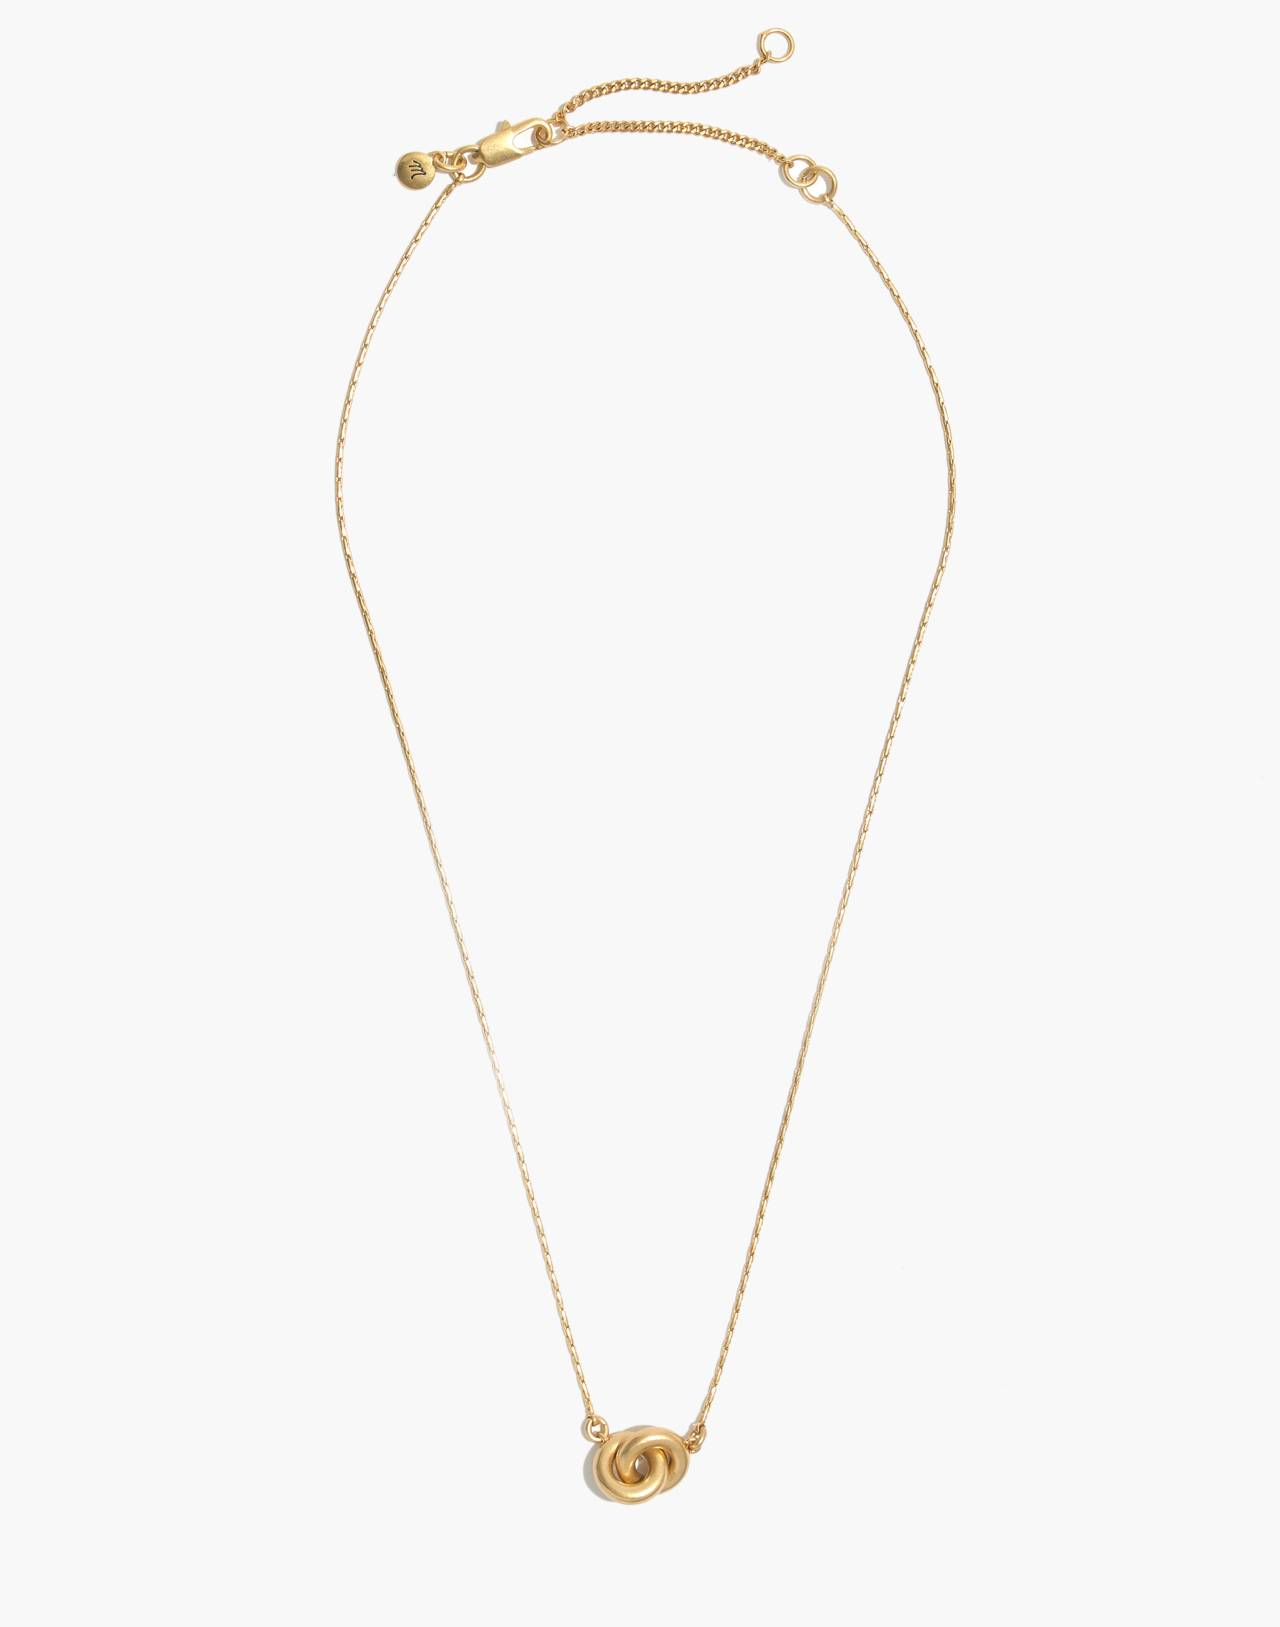 Double Link Necklace in vintage gold image 2